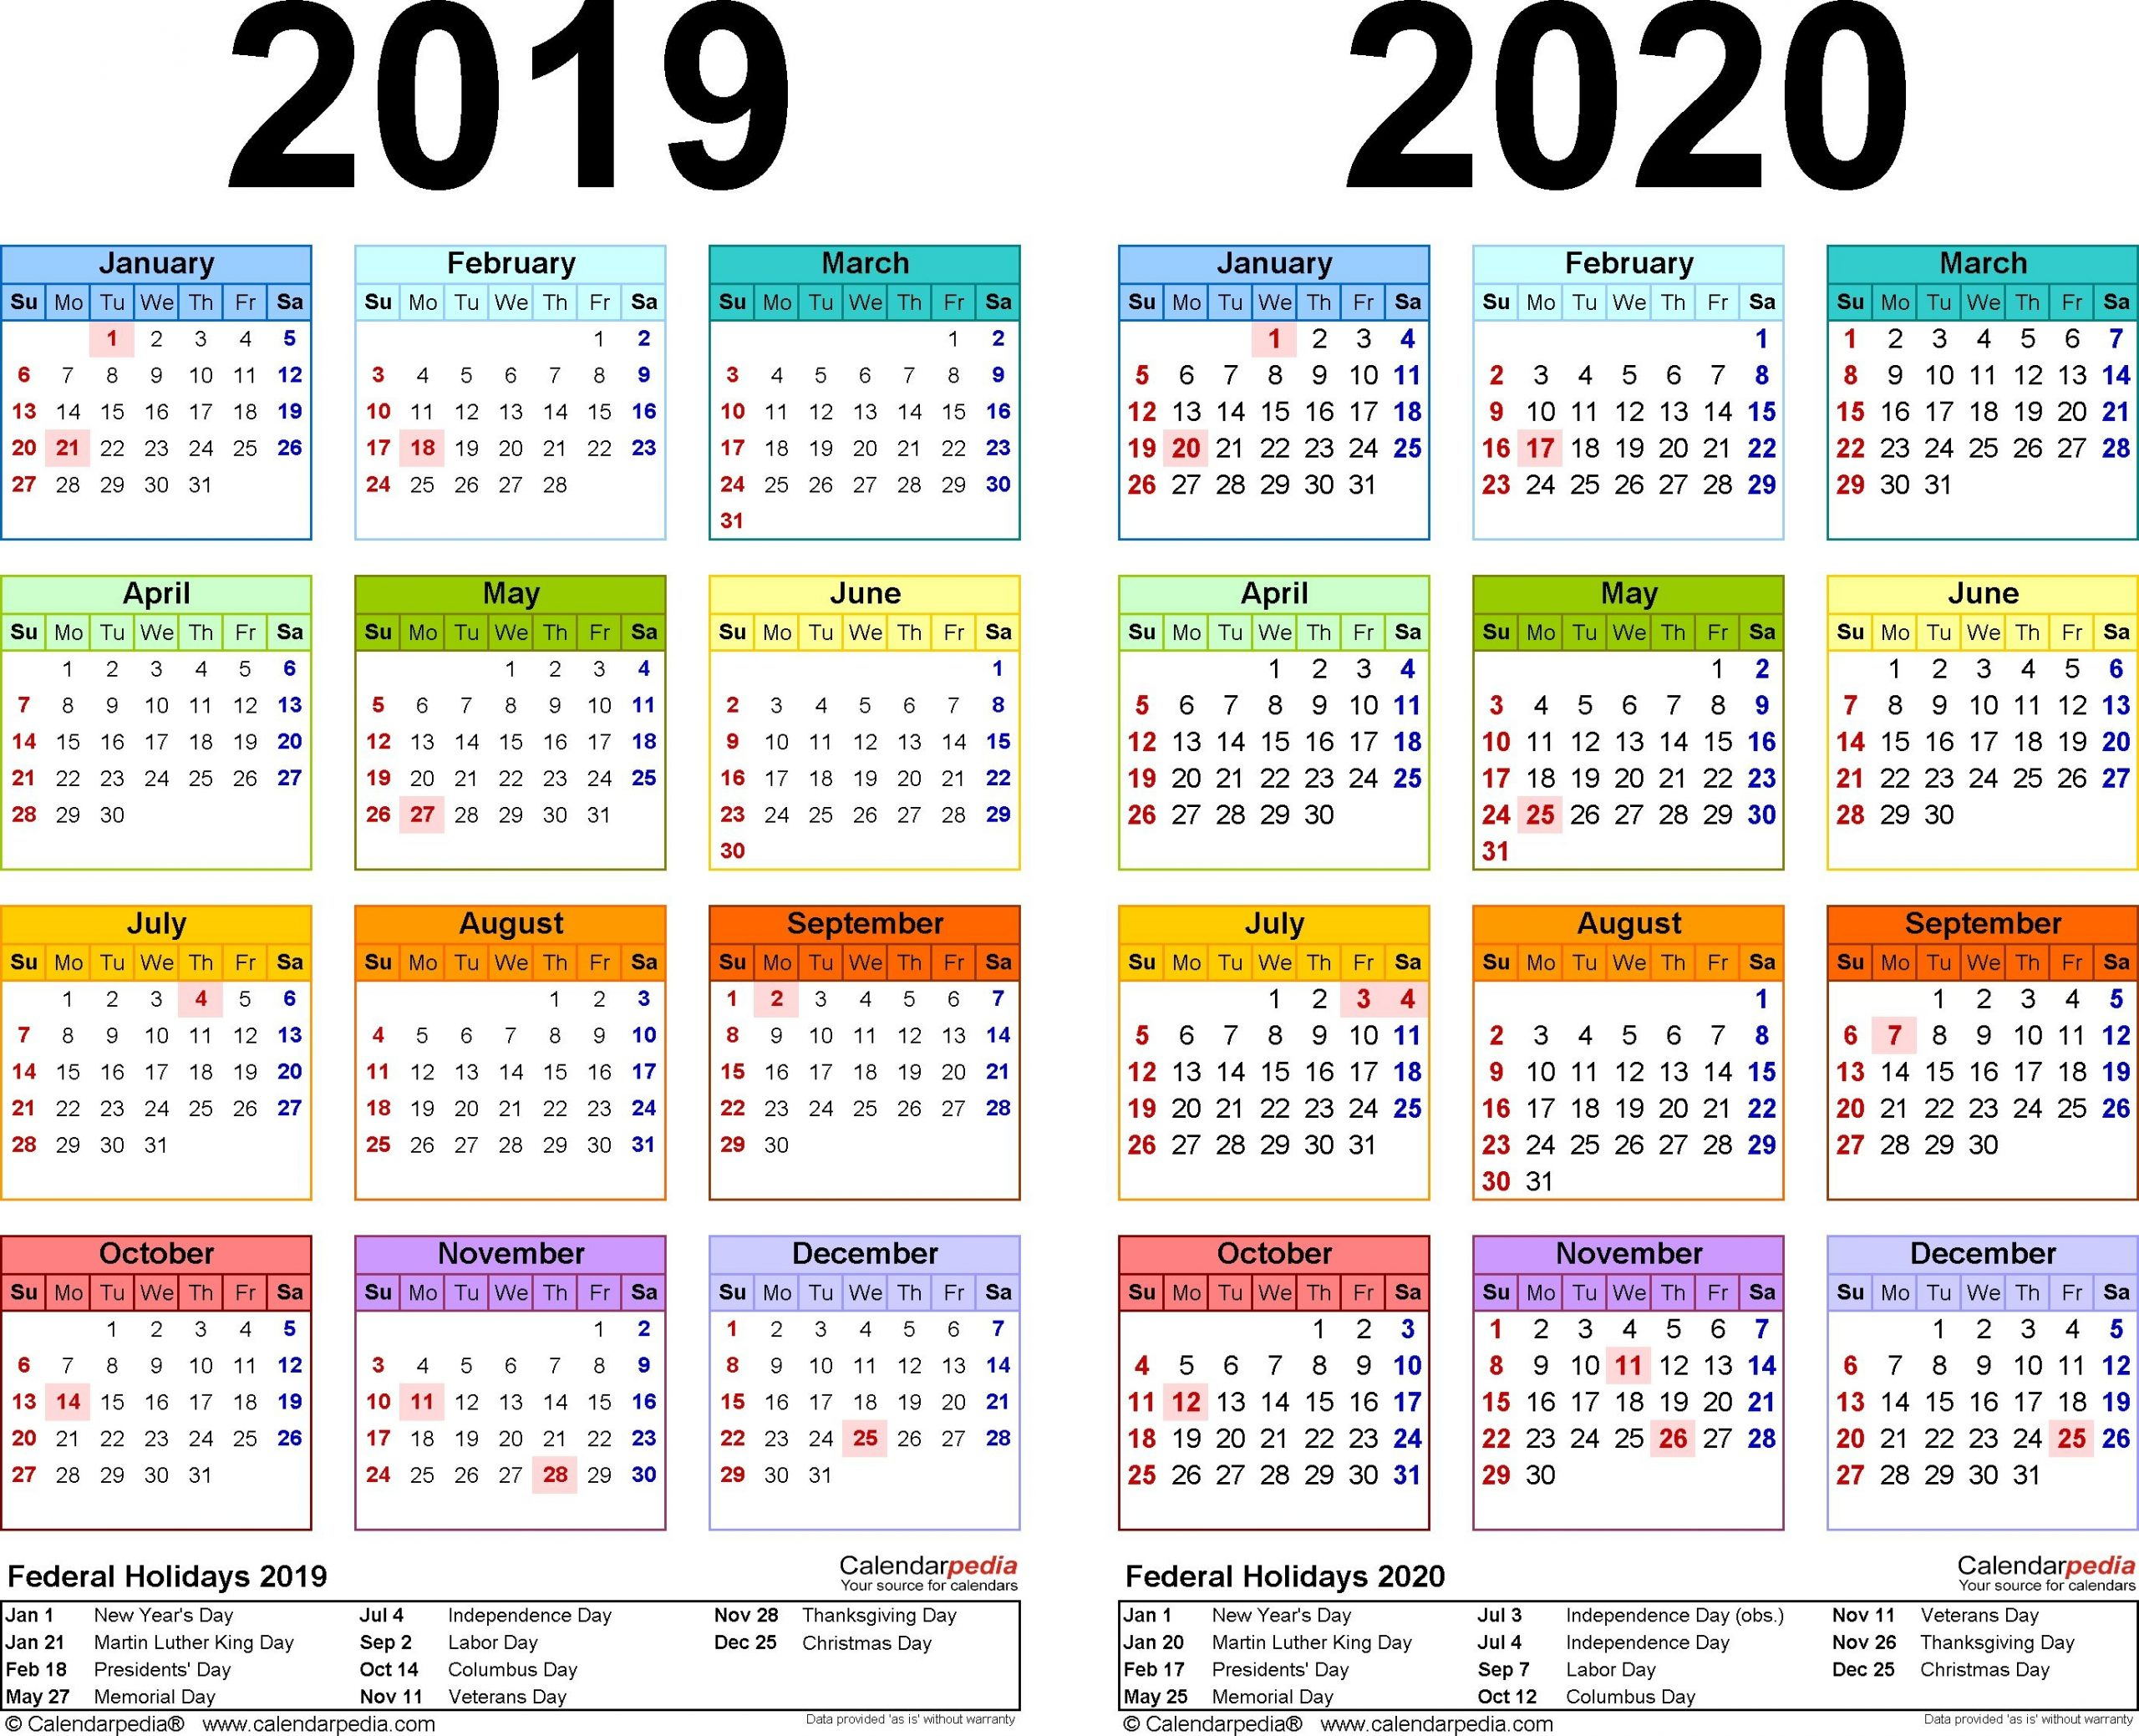 Appointments Calendar 2020 - Togo.wpart.co